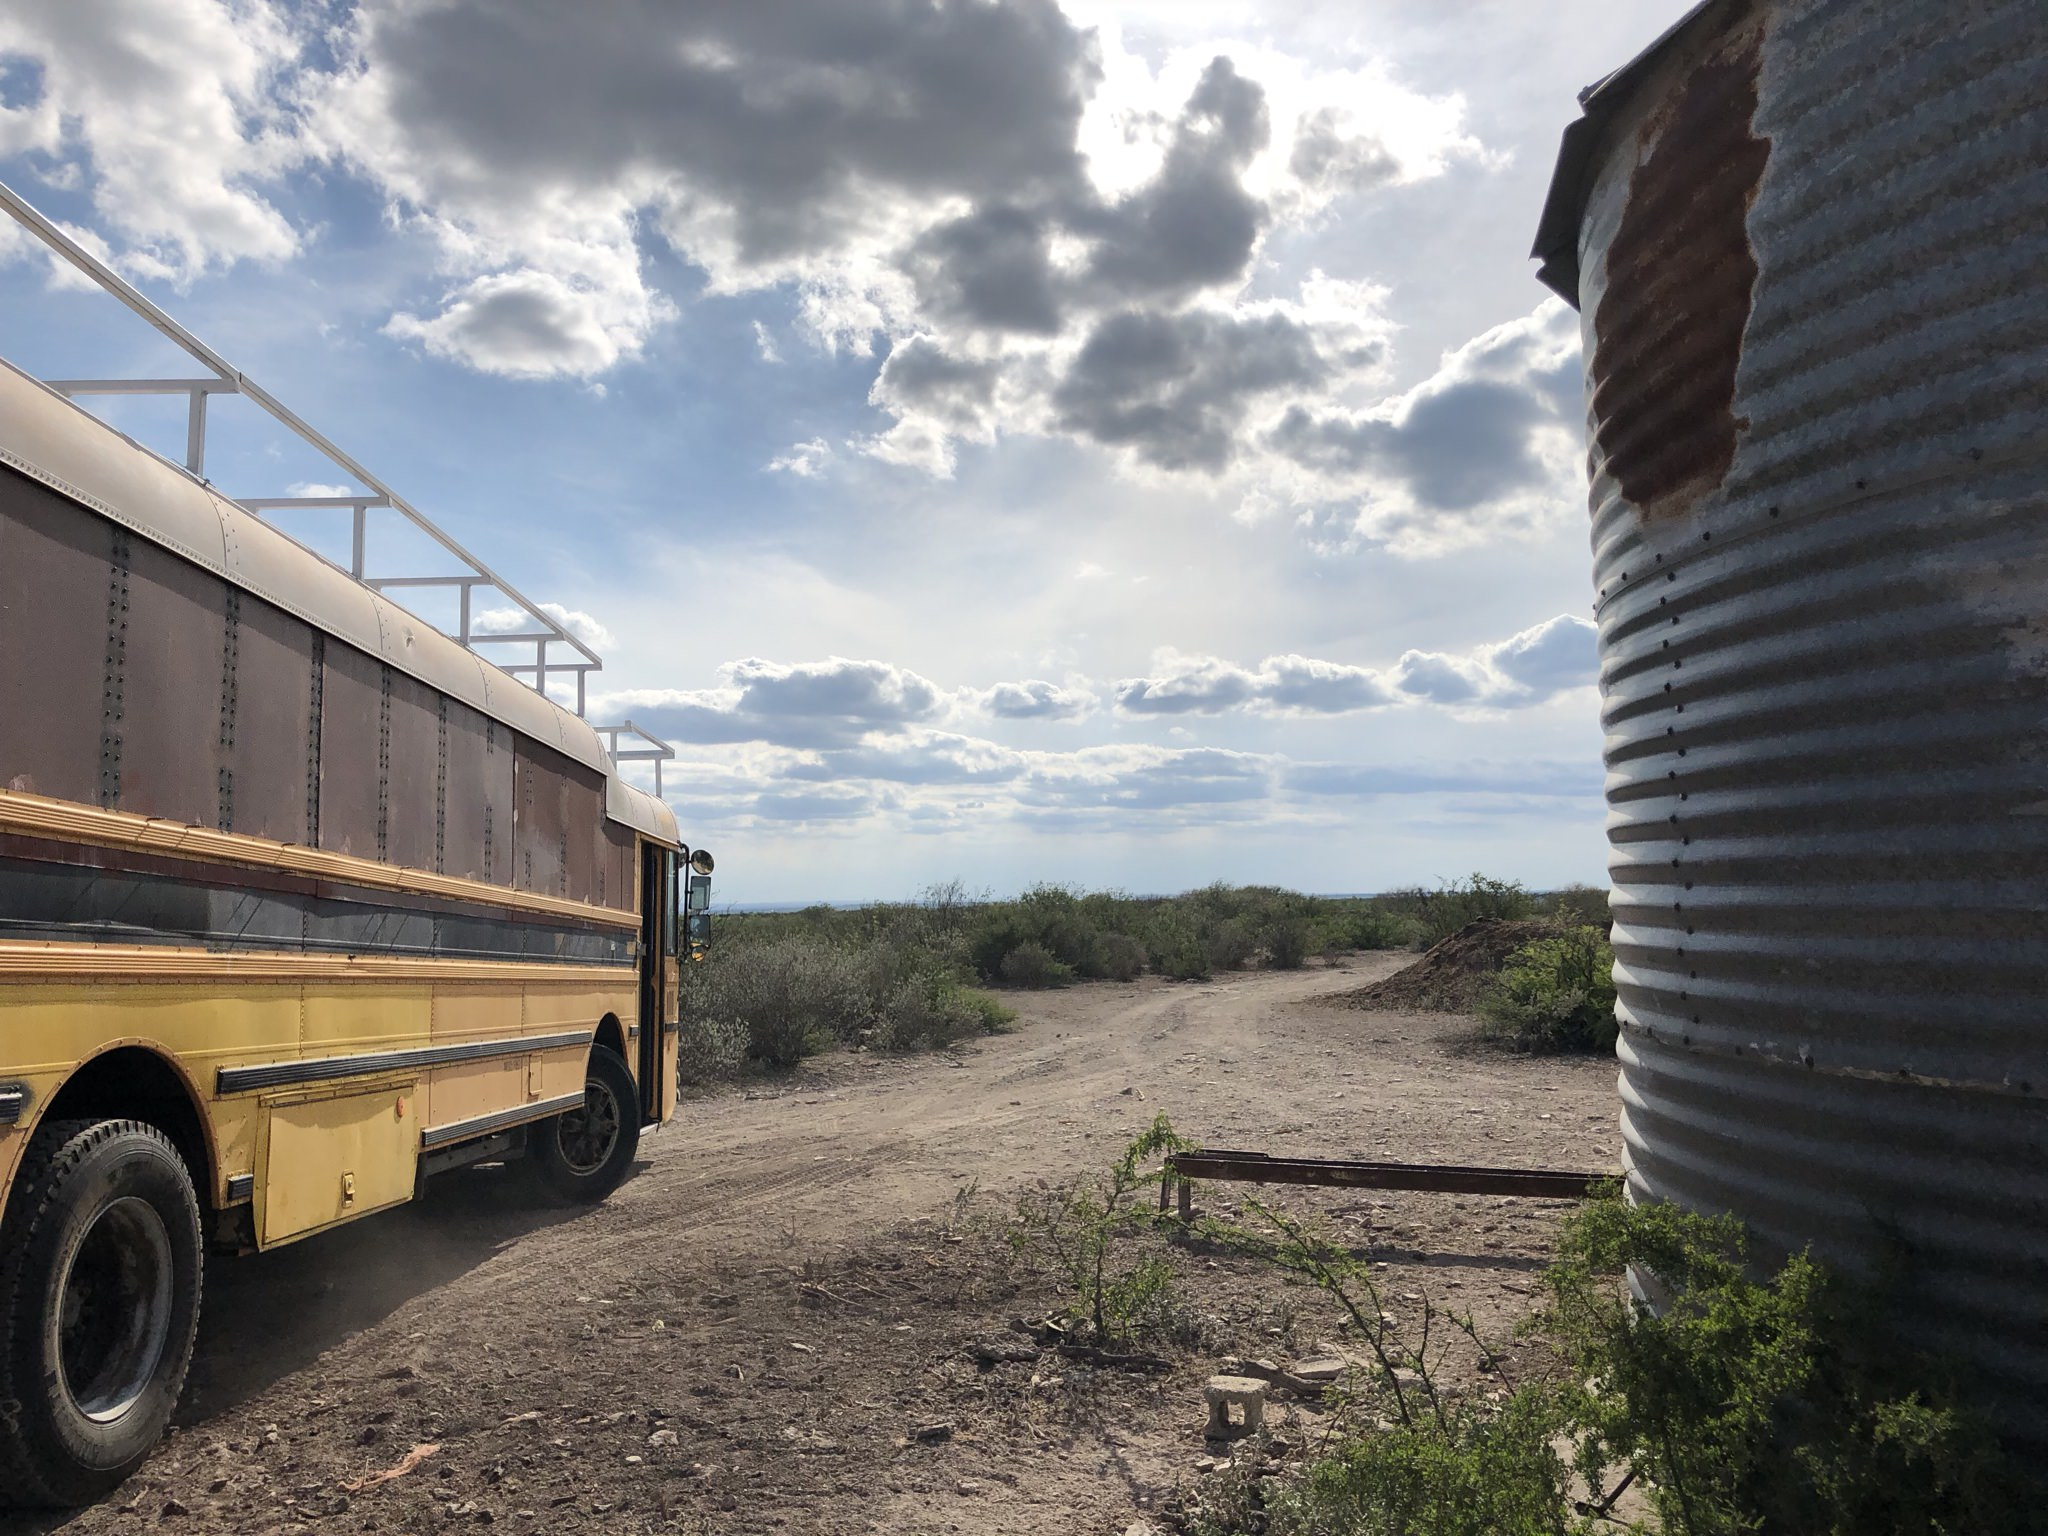 The Derelicte Bus at it's new location. 6 months into the project. May 2018.